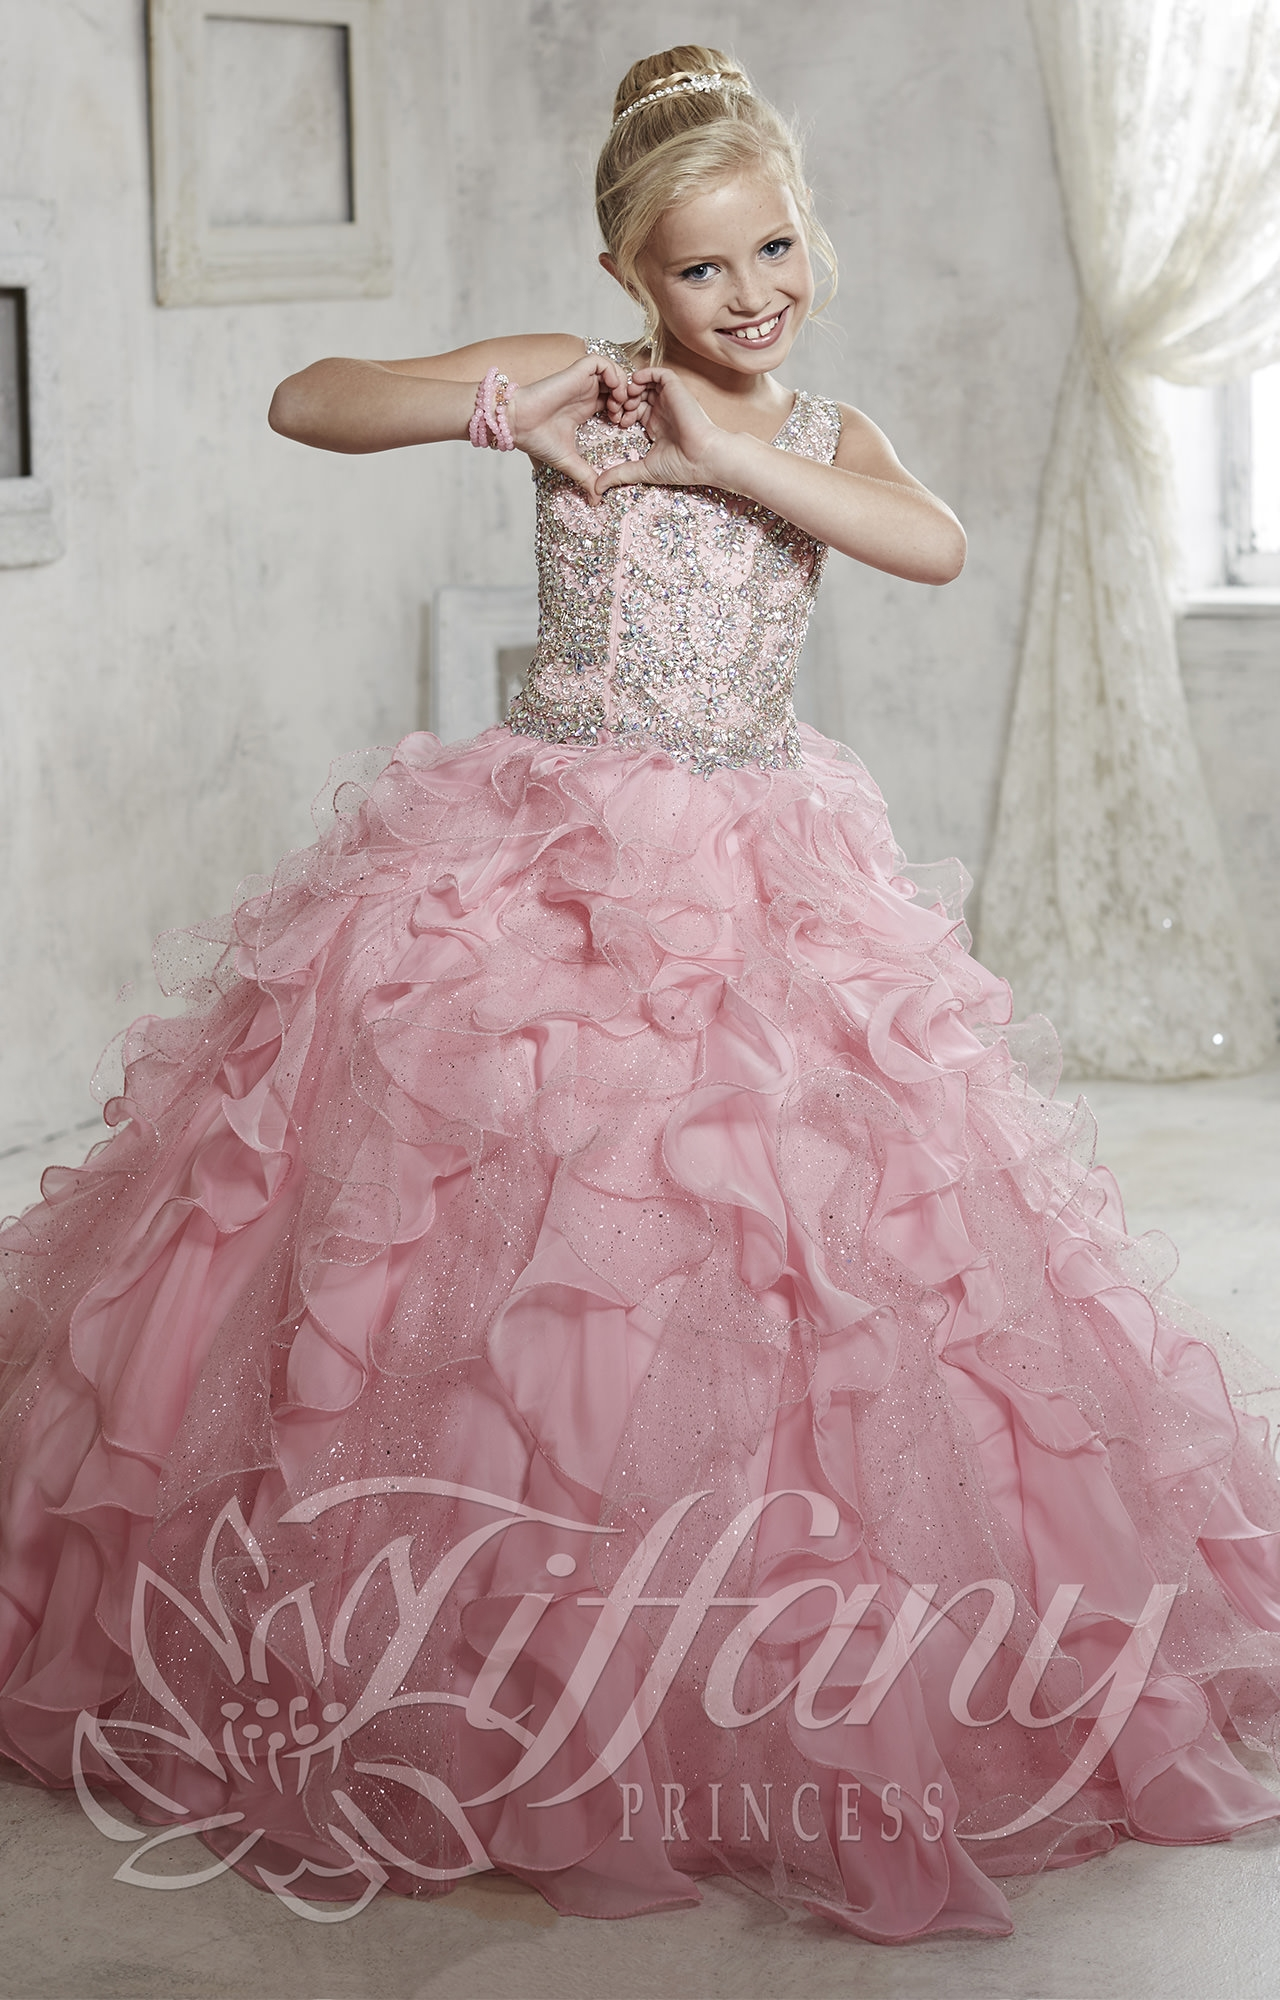 Tiffany Princess 13440 Strawberry Shortcake Dress Prom Dress